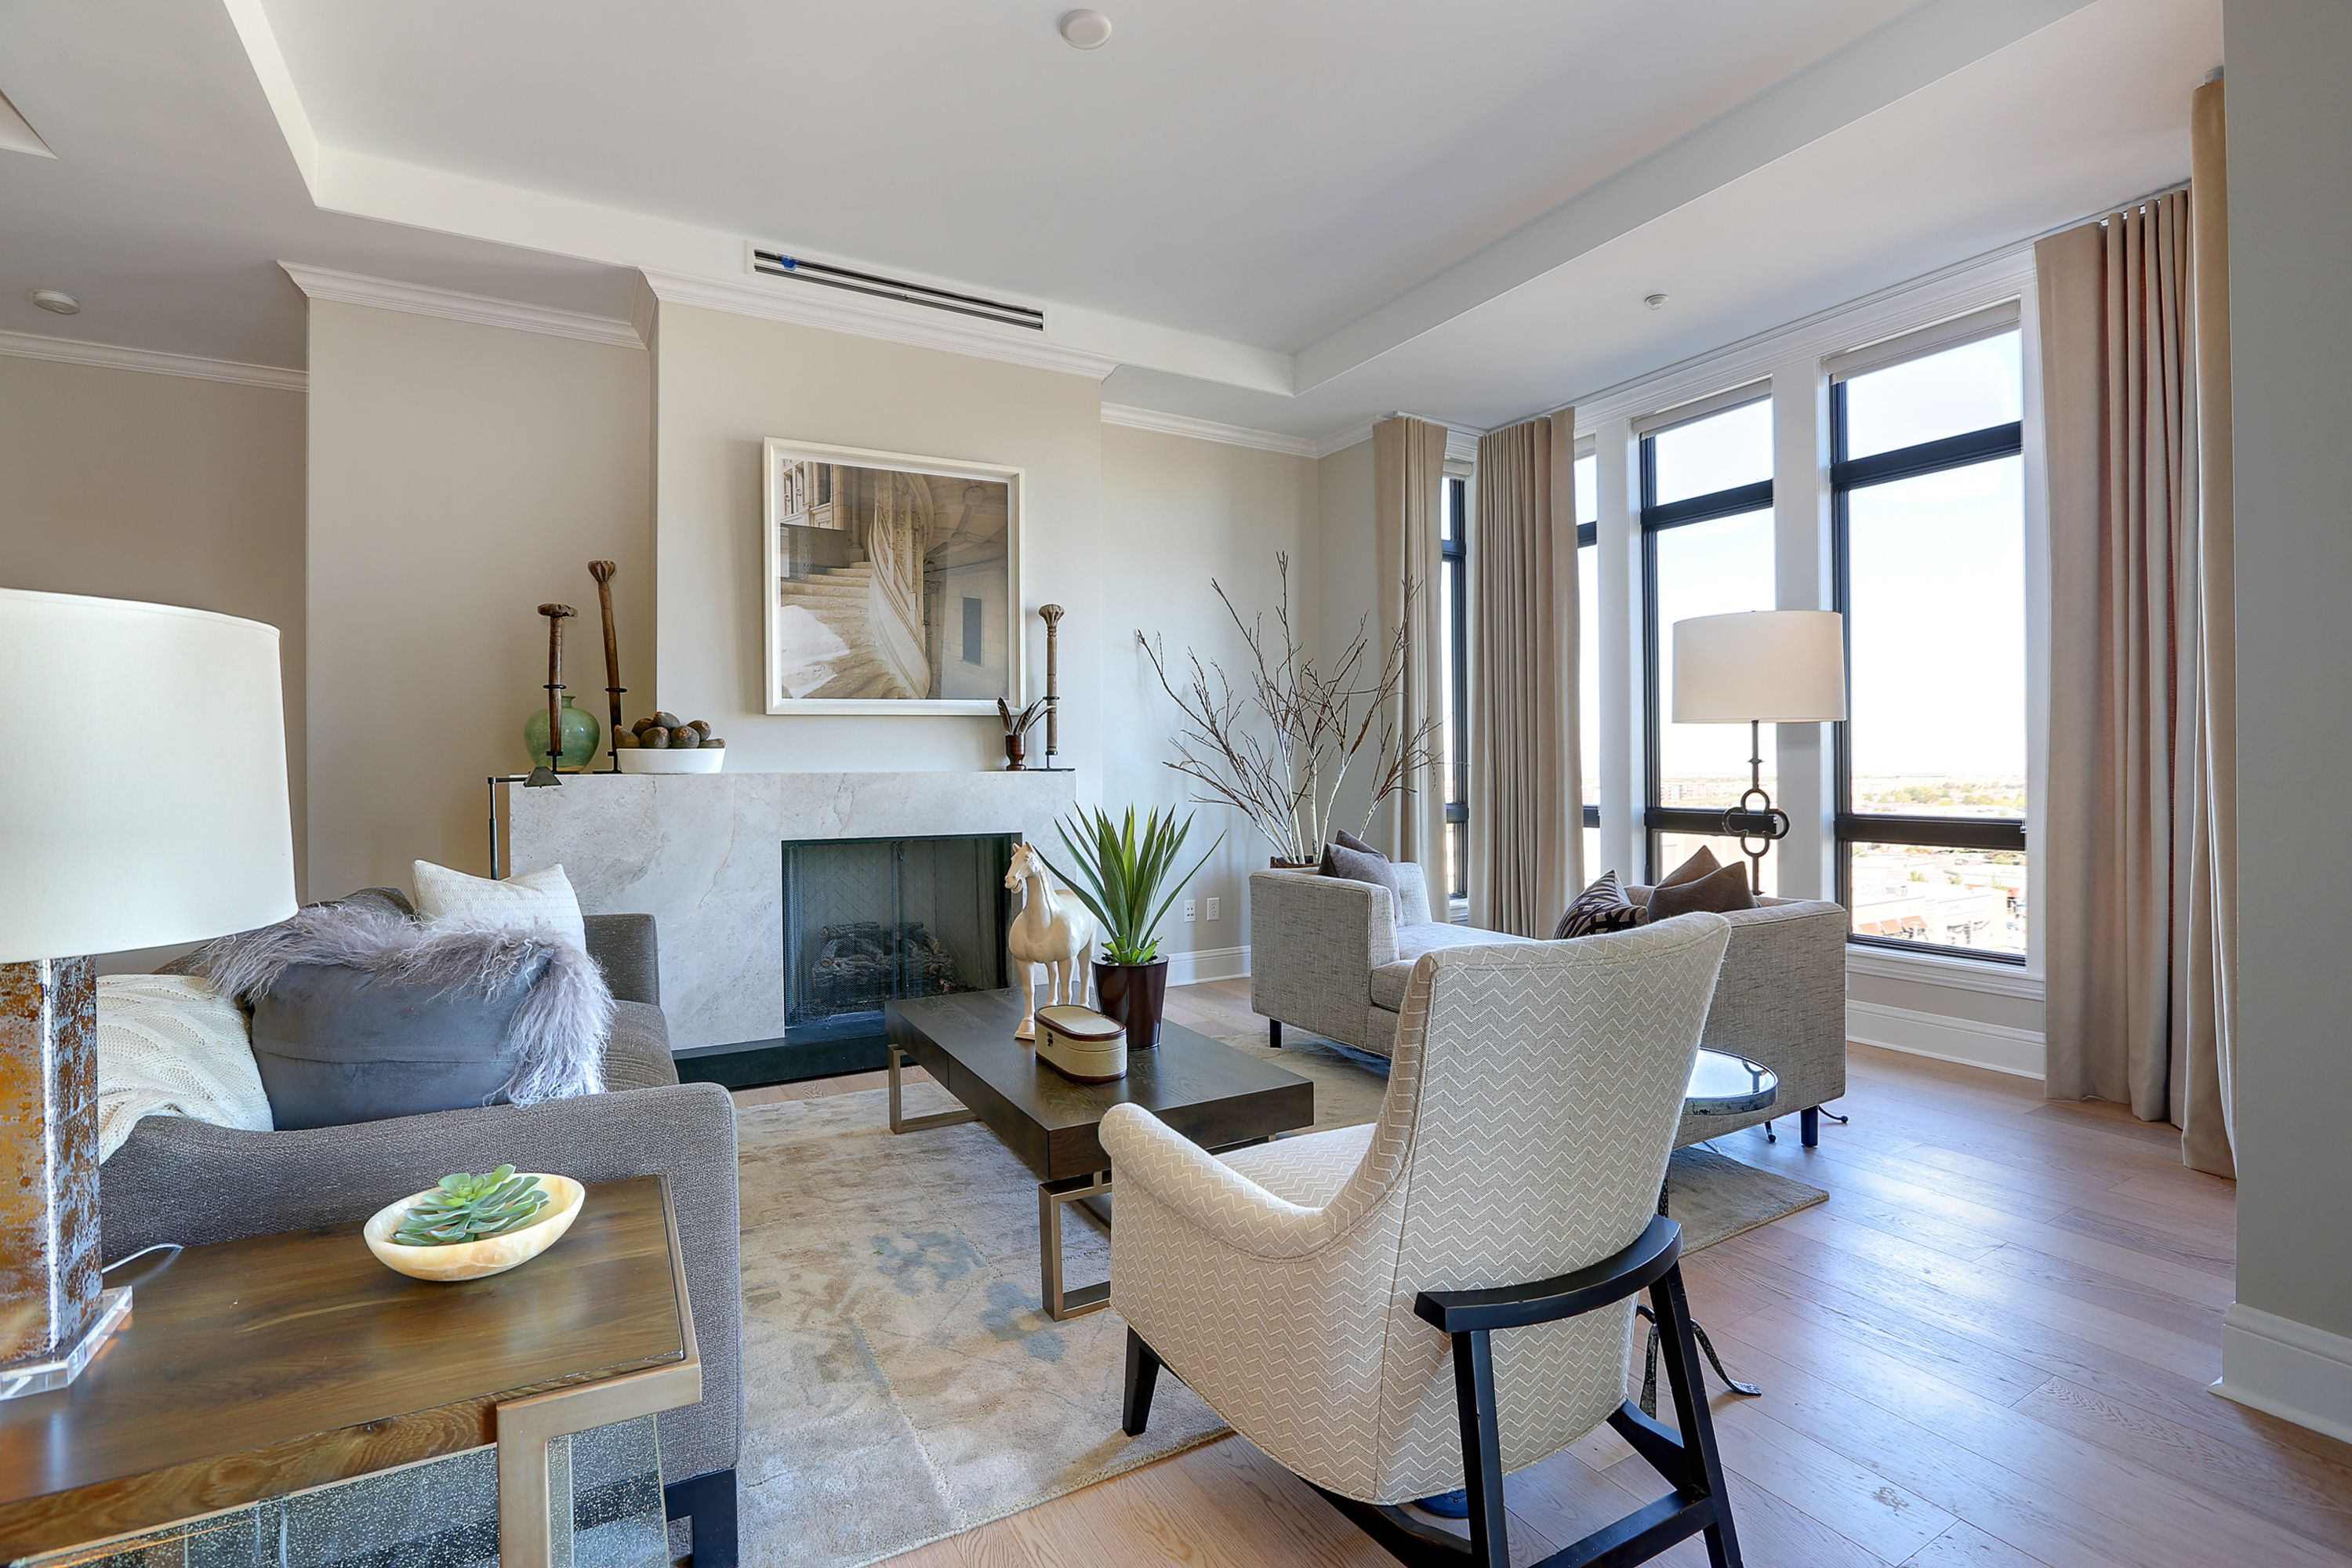 A light and bright living room with quite a view! All furniture and decor comes from HW Home, a Colorado company.